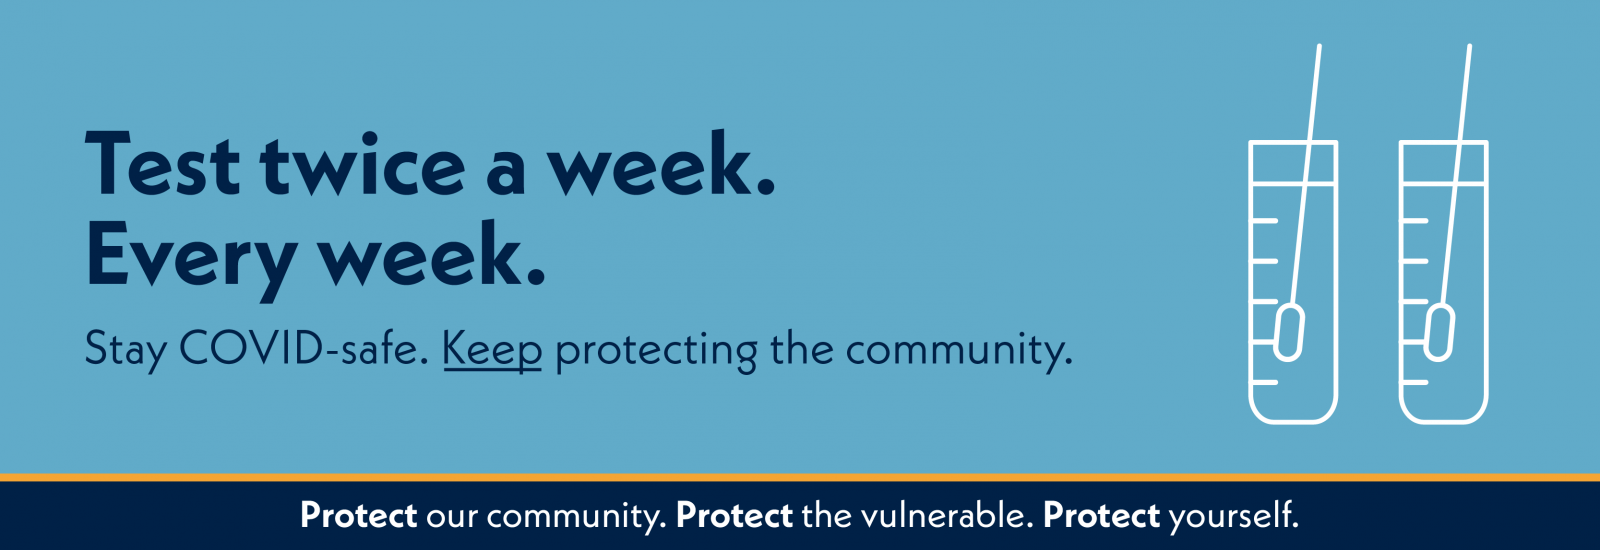 Poster with two test vials and the text 'Test twice a week. Every week. Stay COVID-safe. Keep protecting the community'.